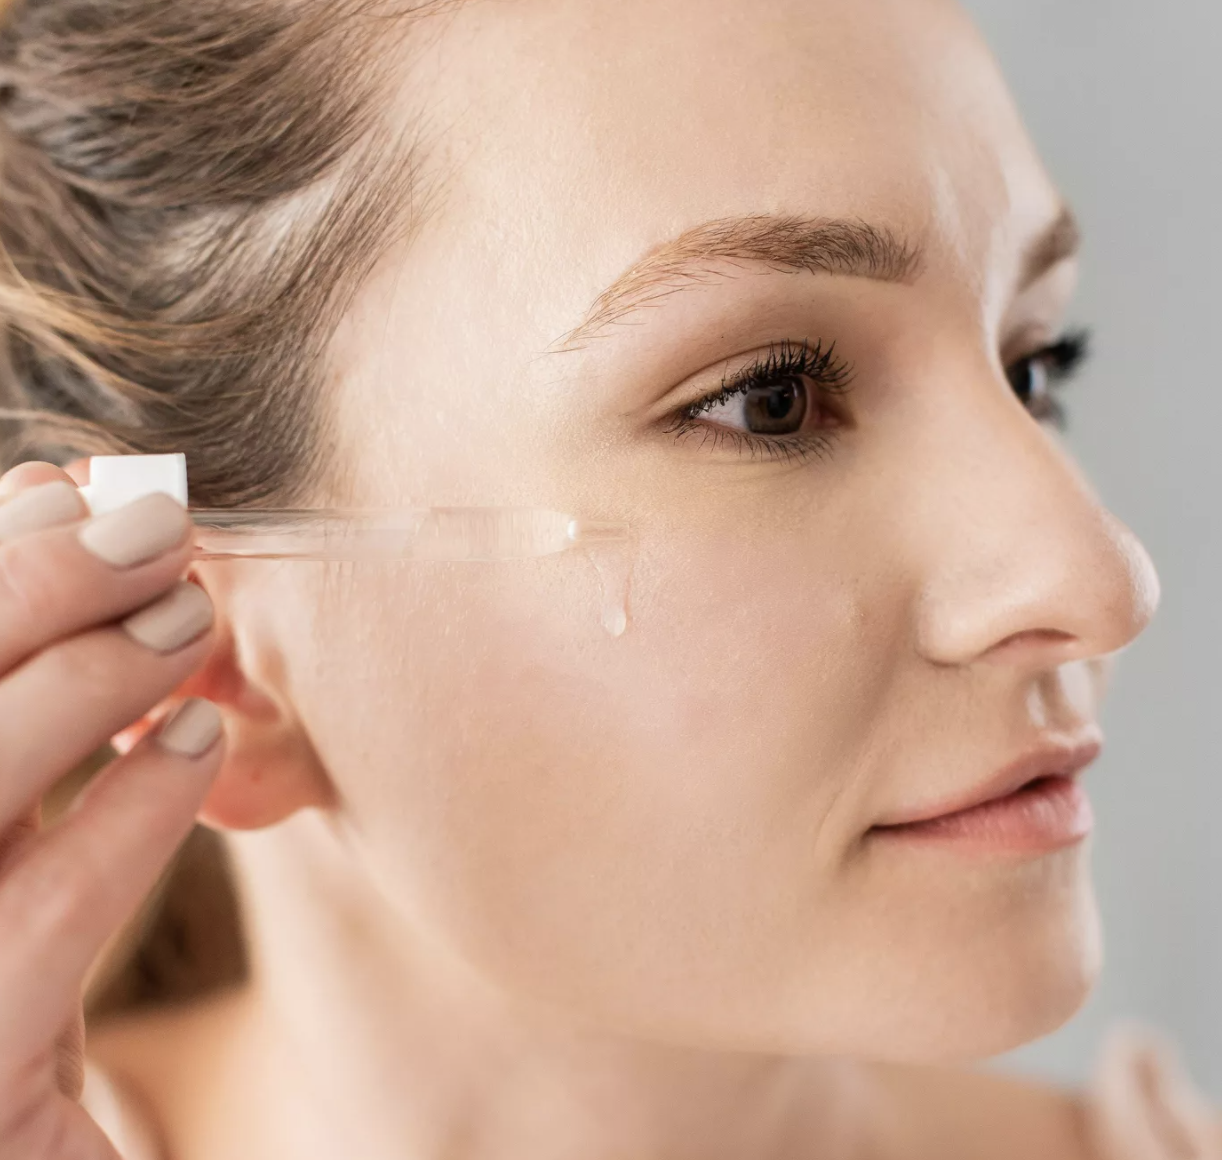 a model applying the serum to their face